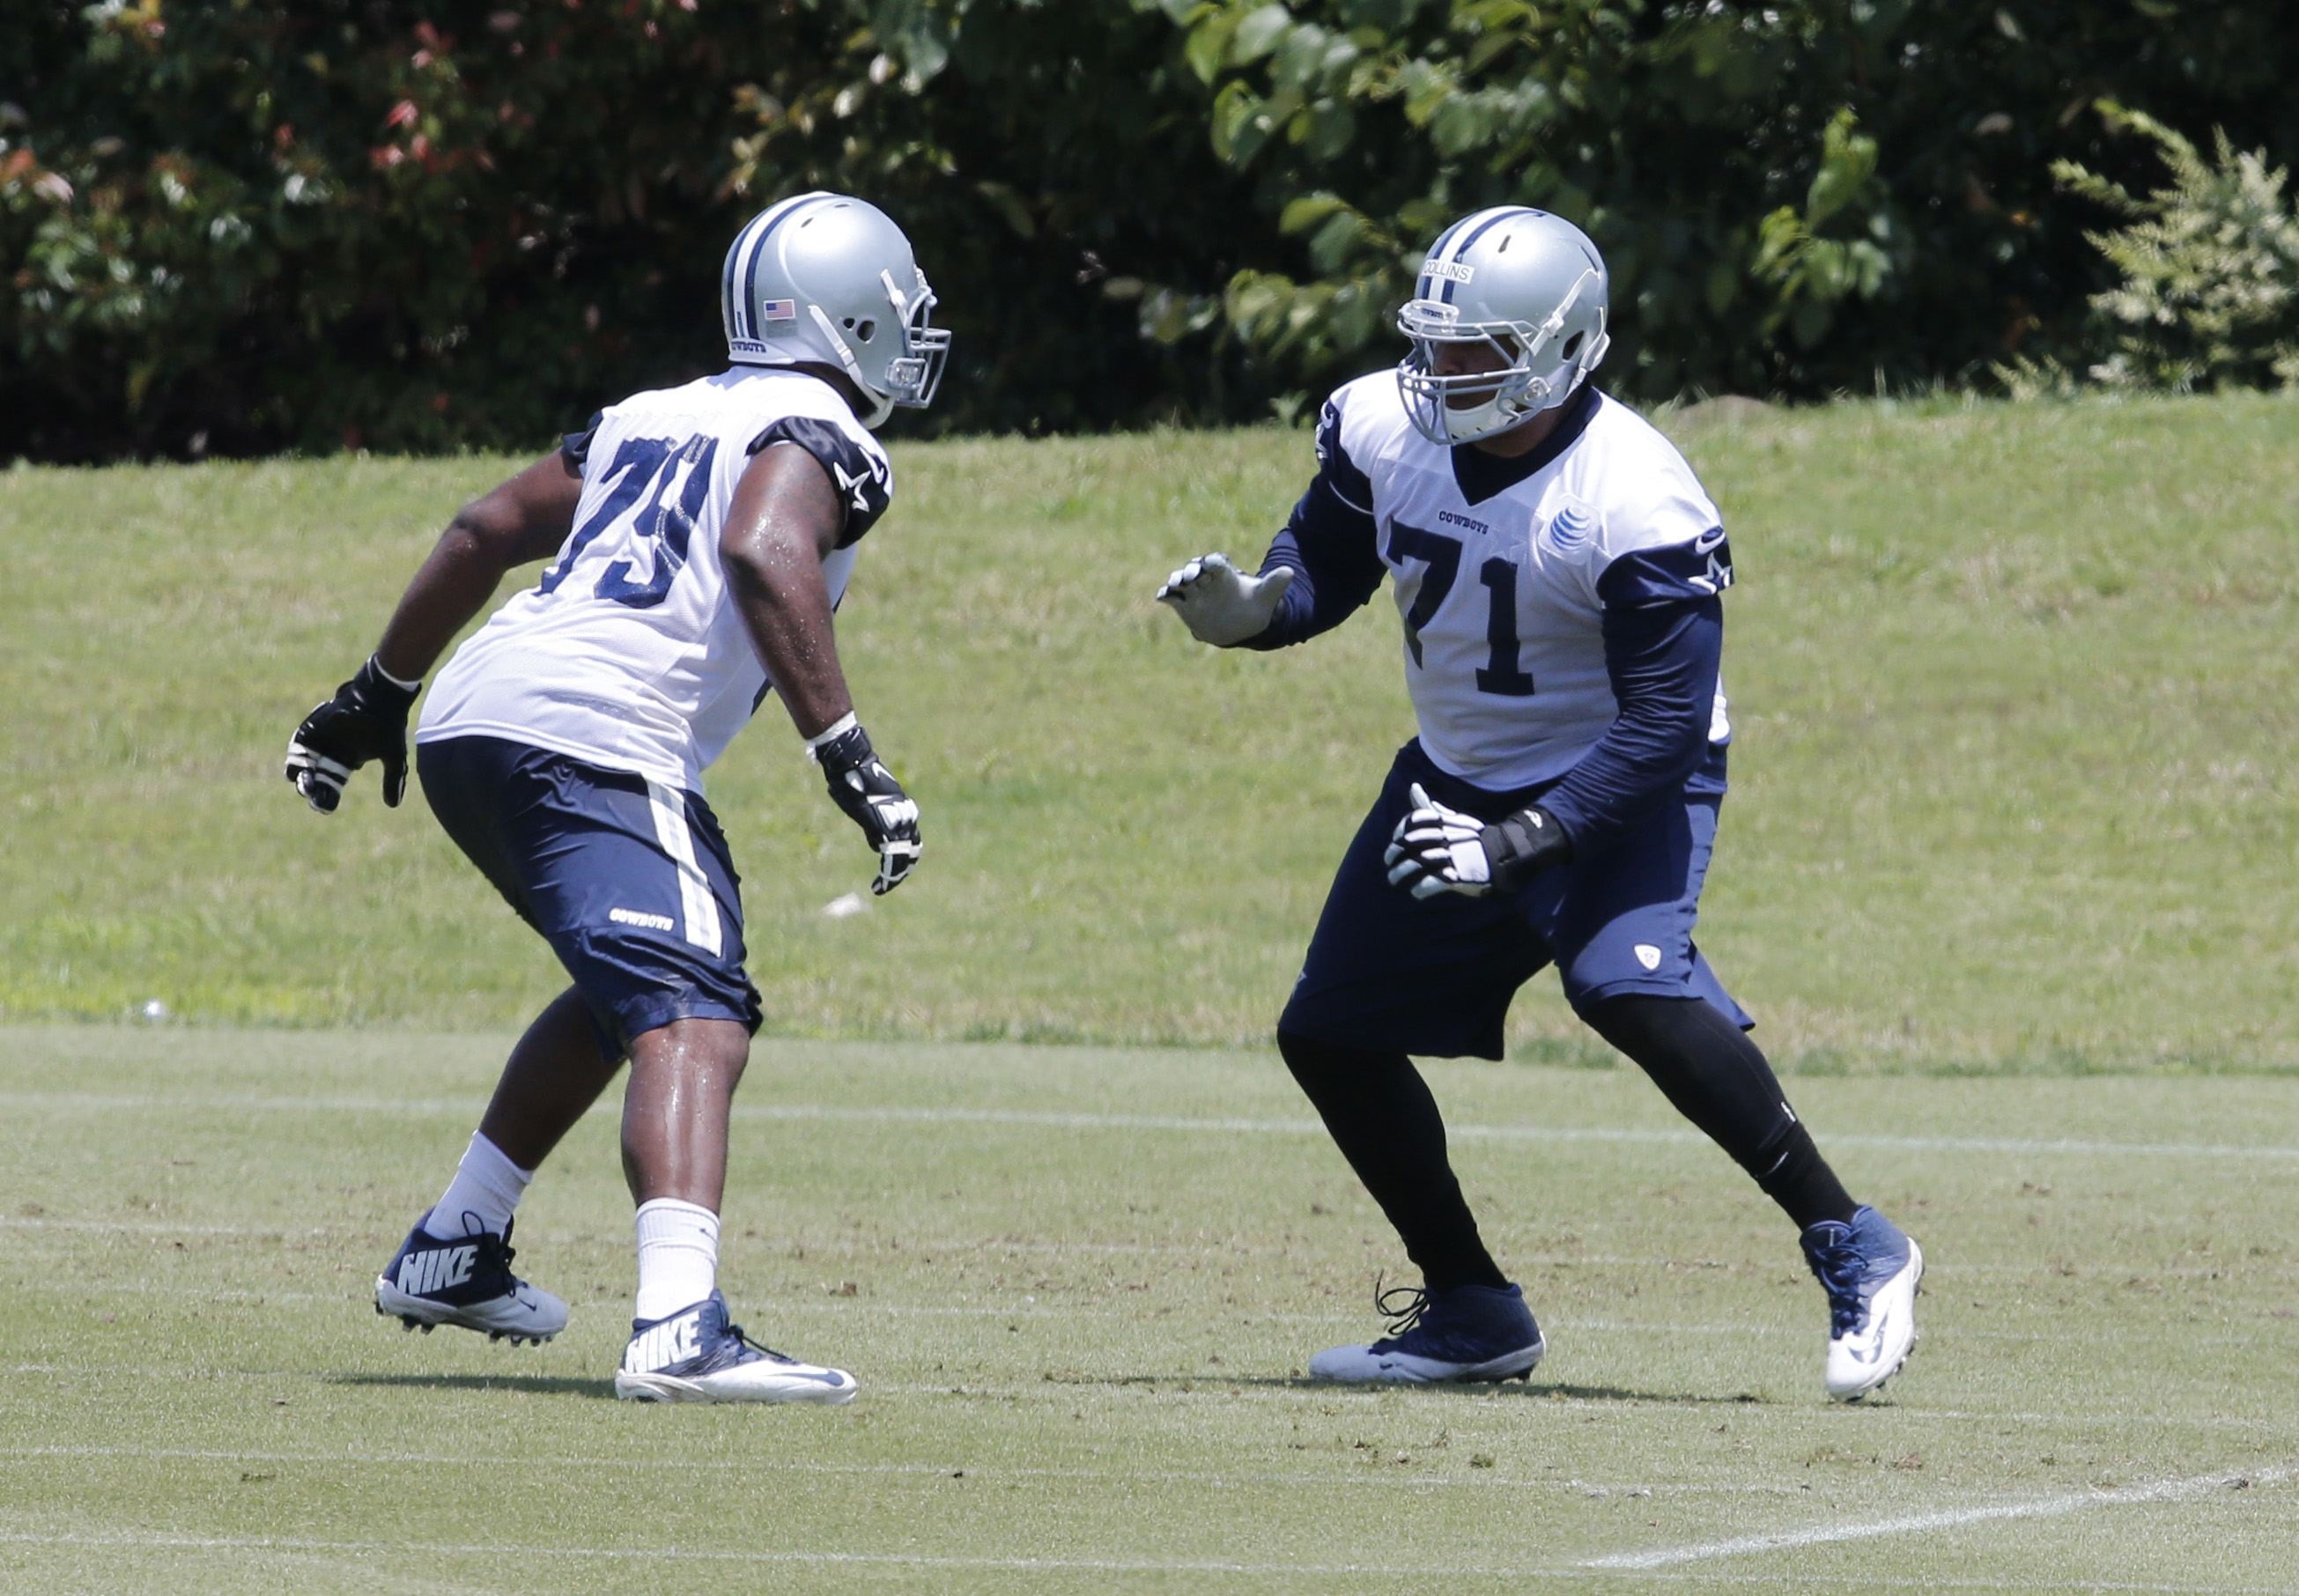 Sean-martin_dallas-cowboys_chaz-green-leaves-practice-again-cowboys-ol-depth-becoming-a-concern